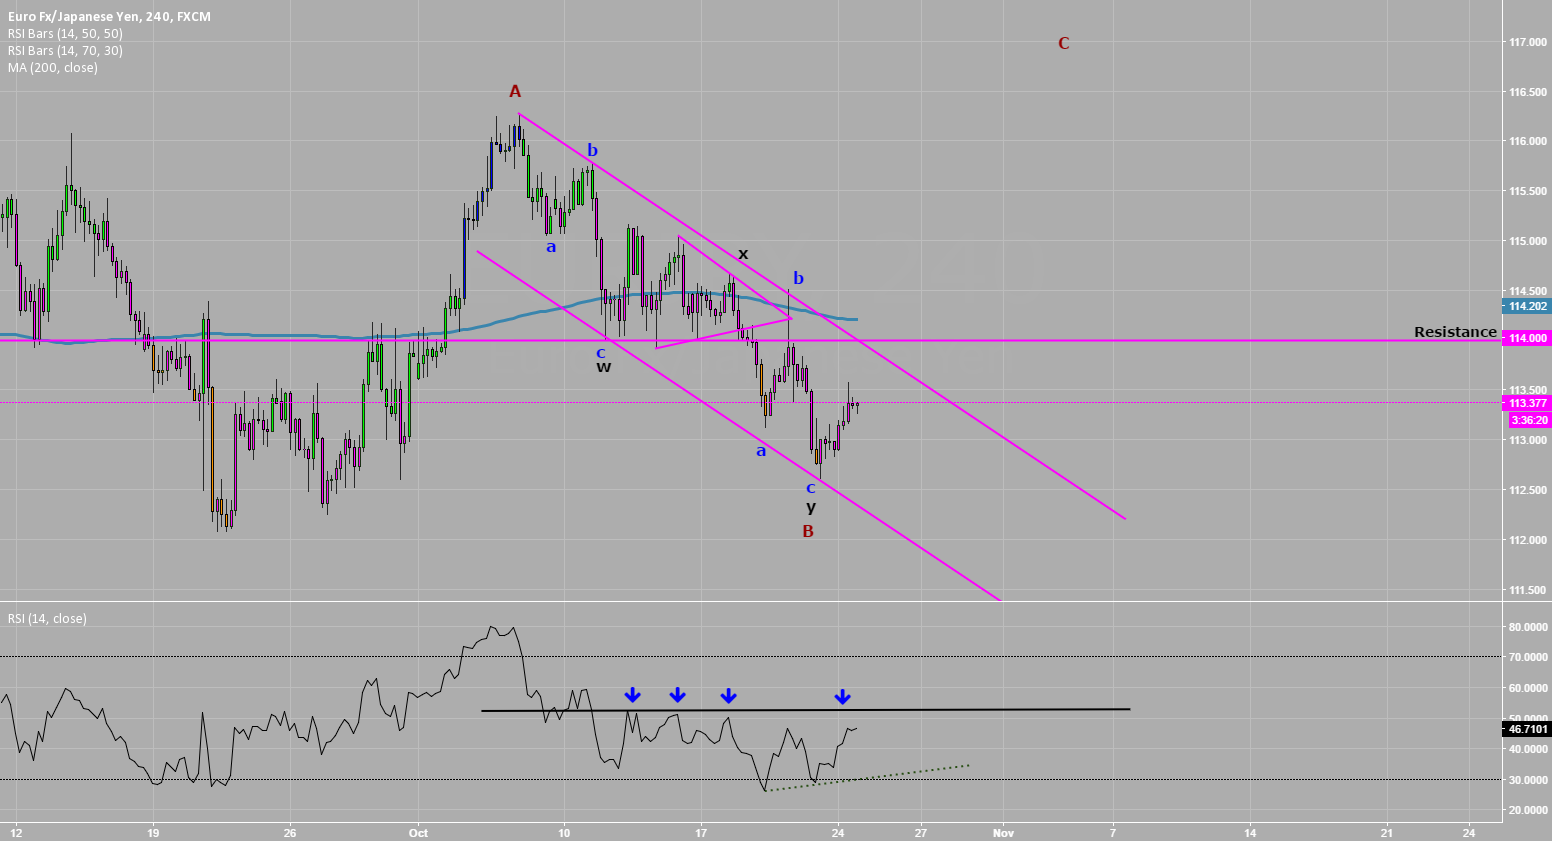 B Down on #EURJPY looks complete